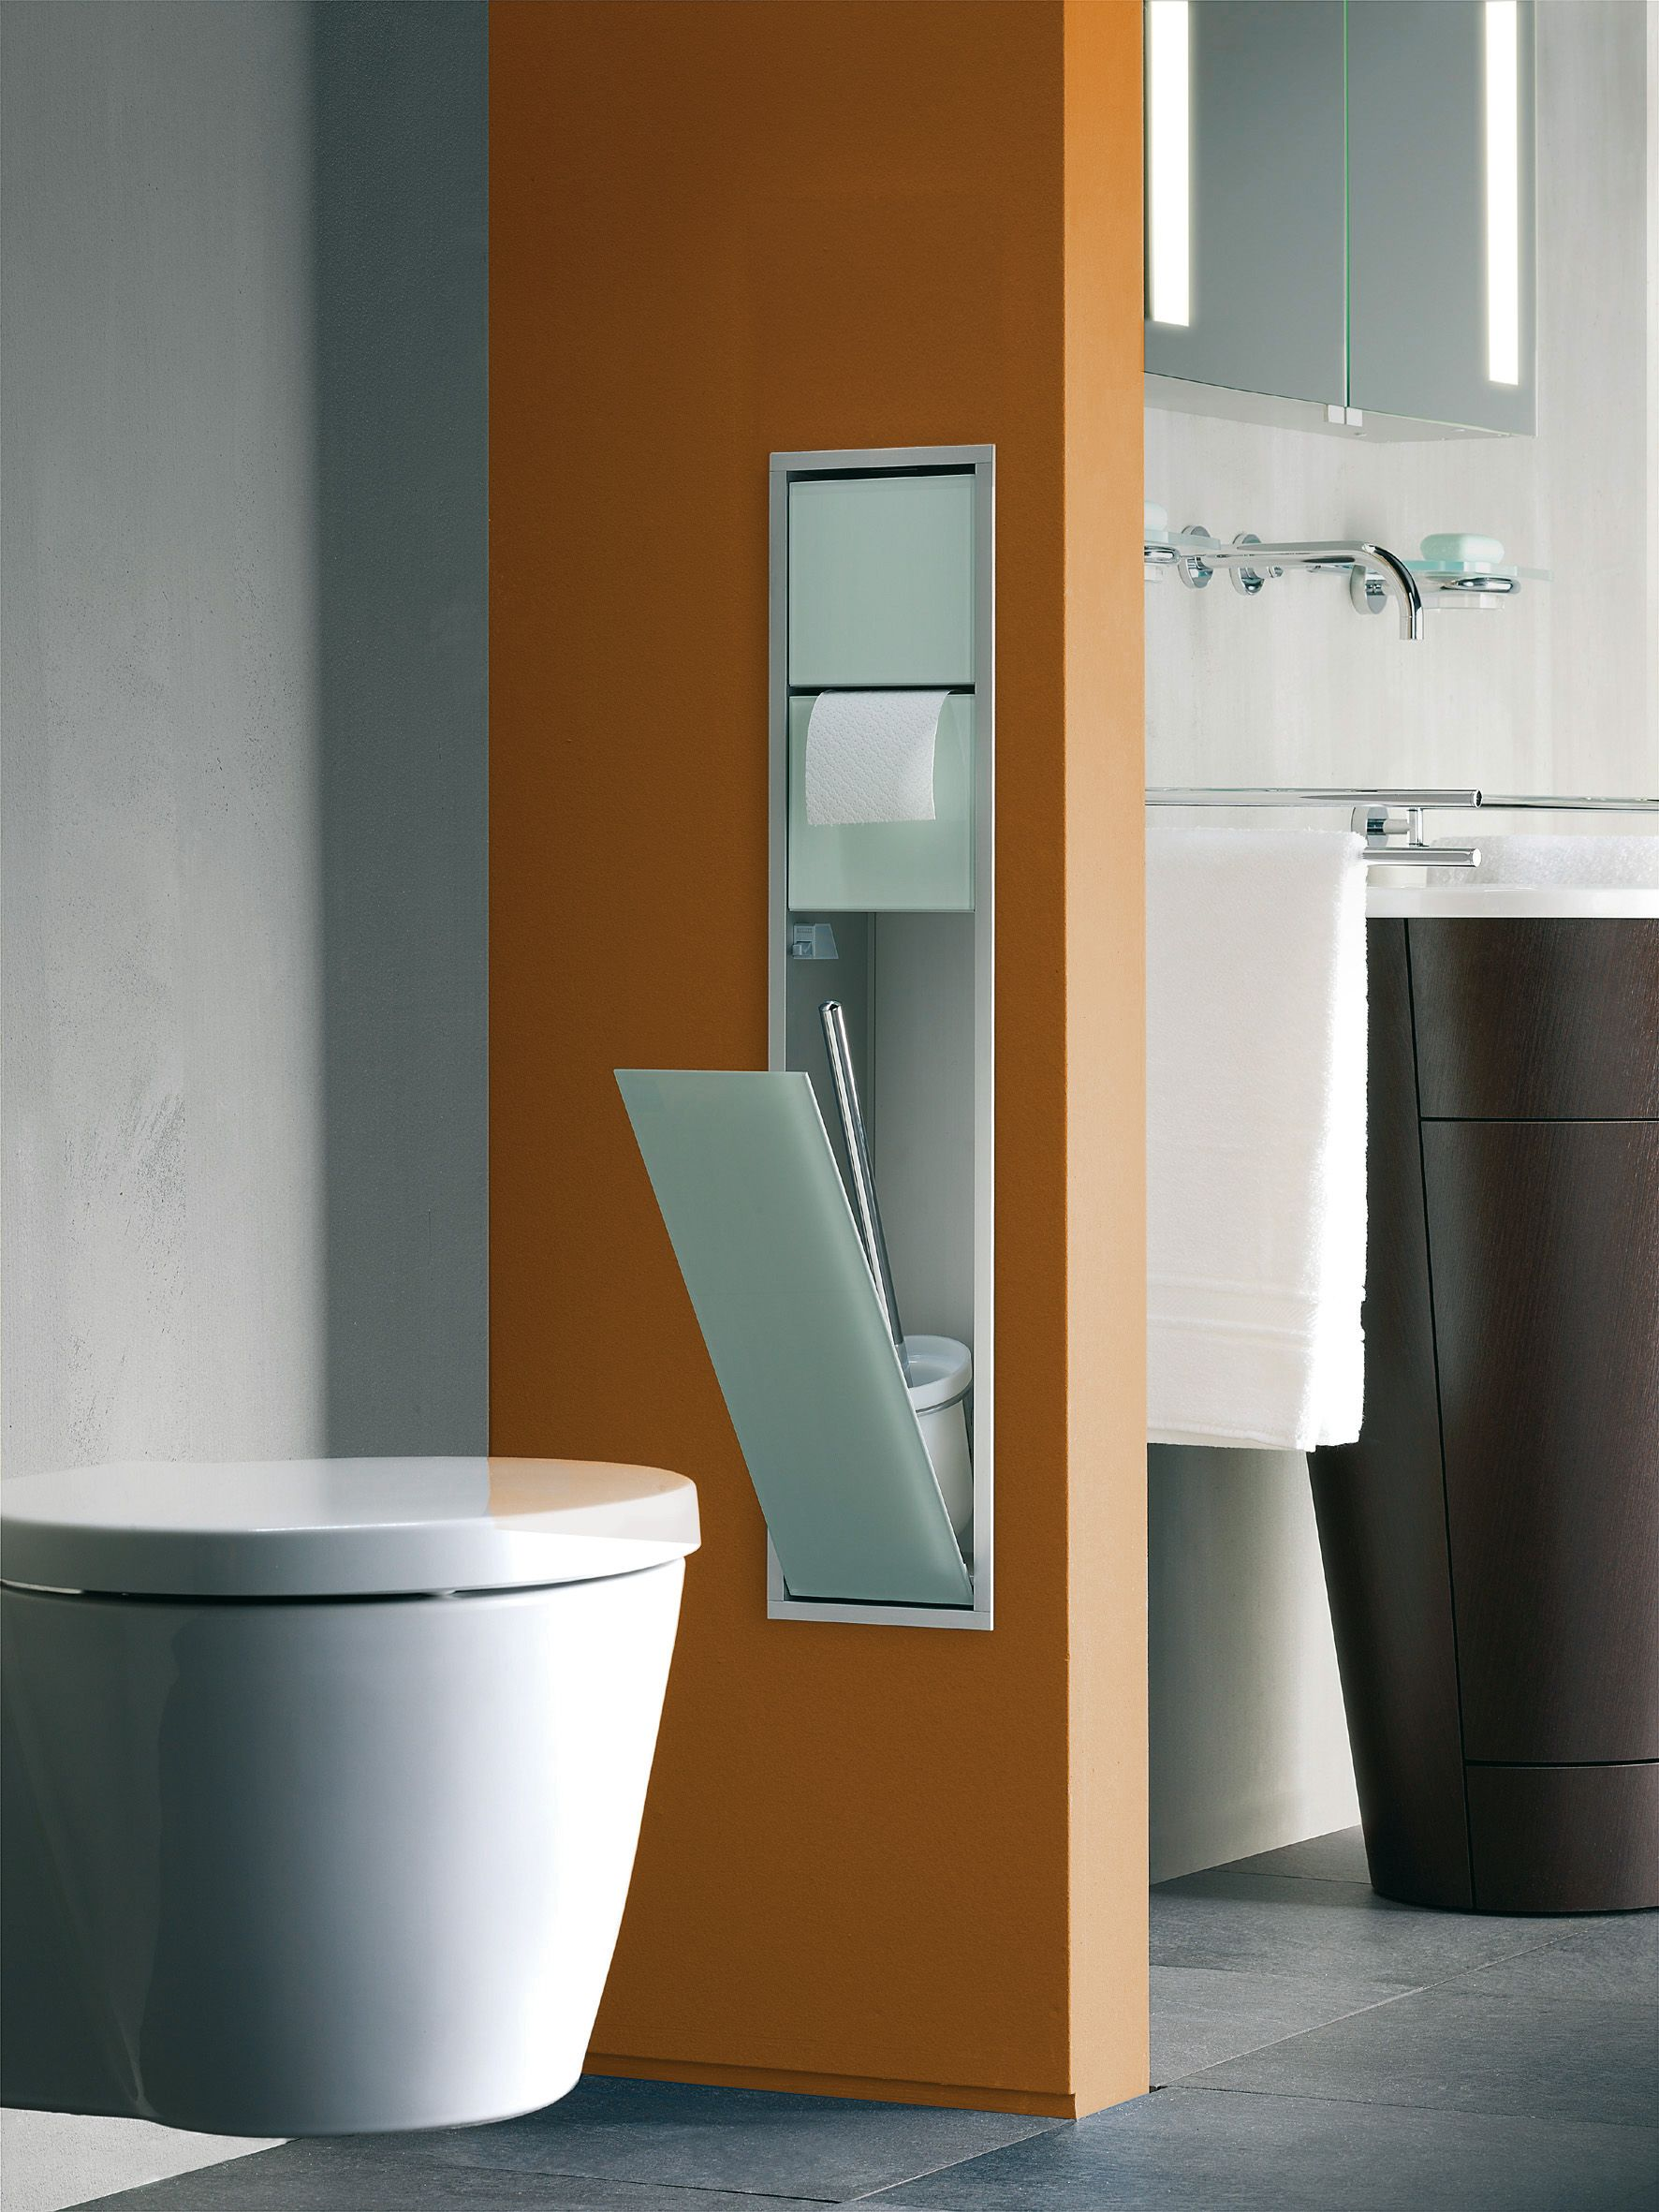 This Toilet Module Of The Emco Asis Series Keeps